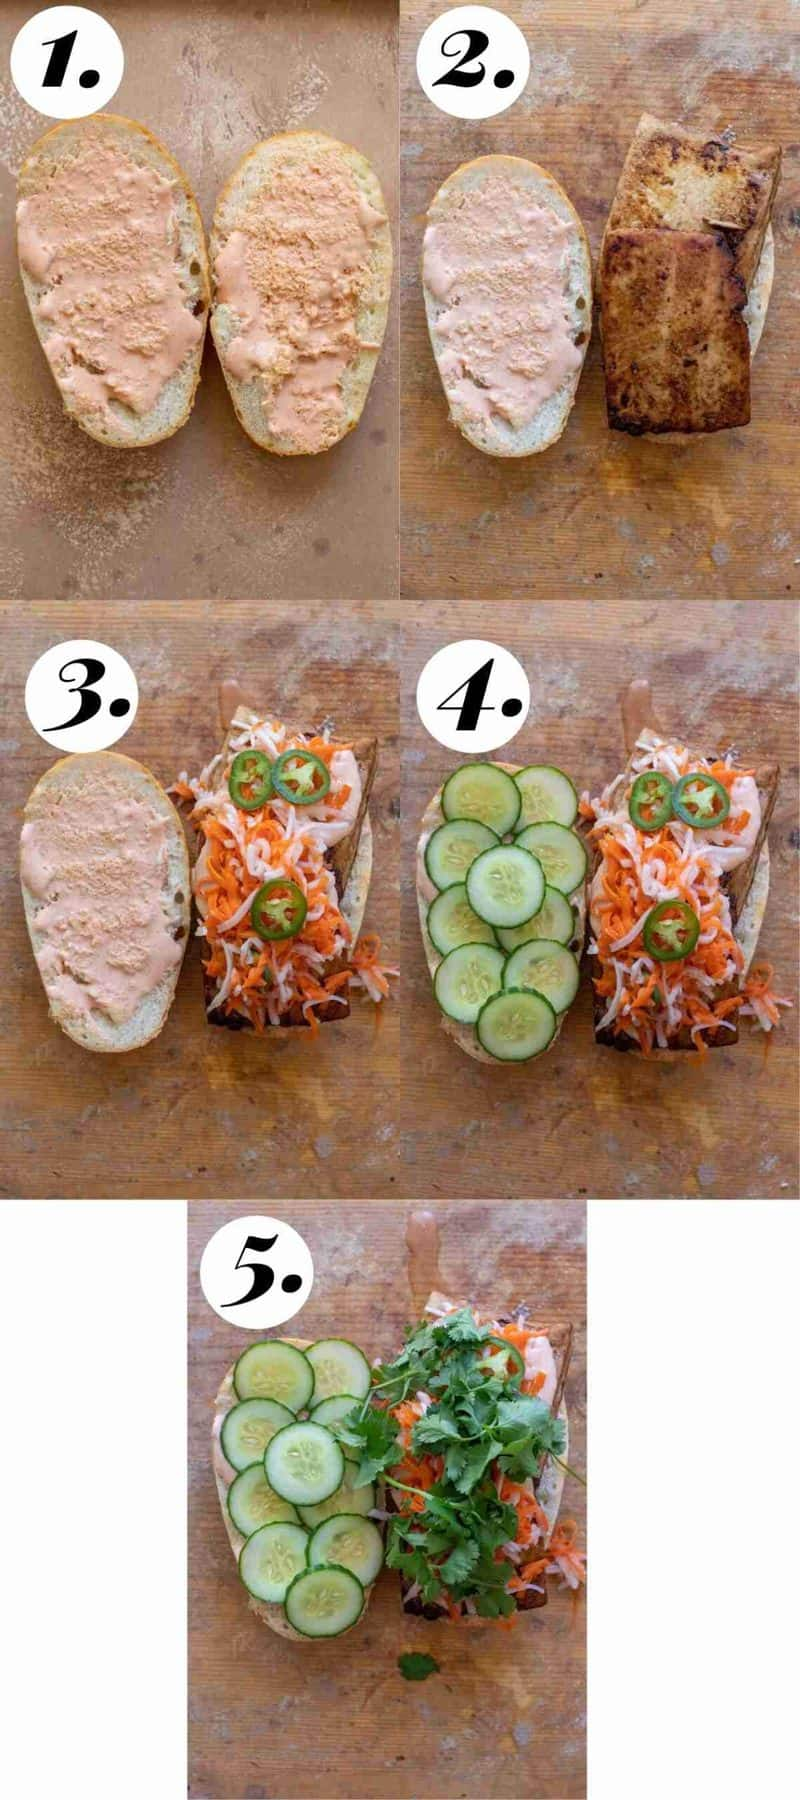 Step by step process of how to make sandwich.